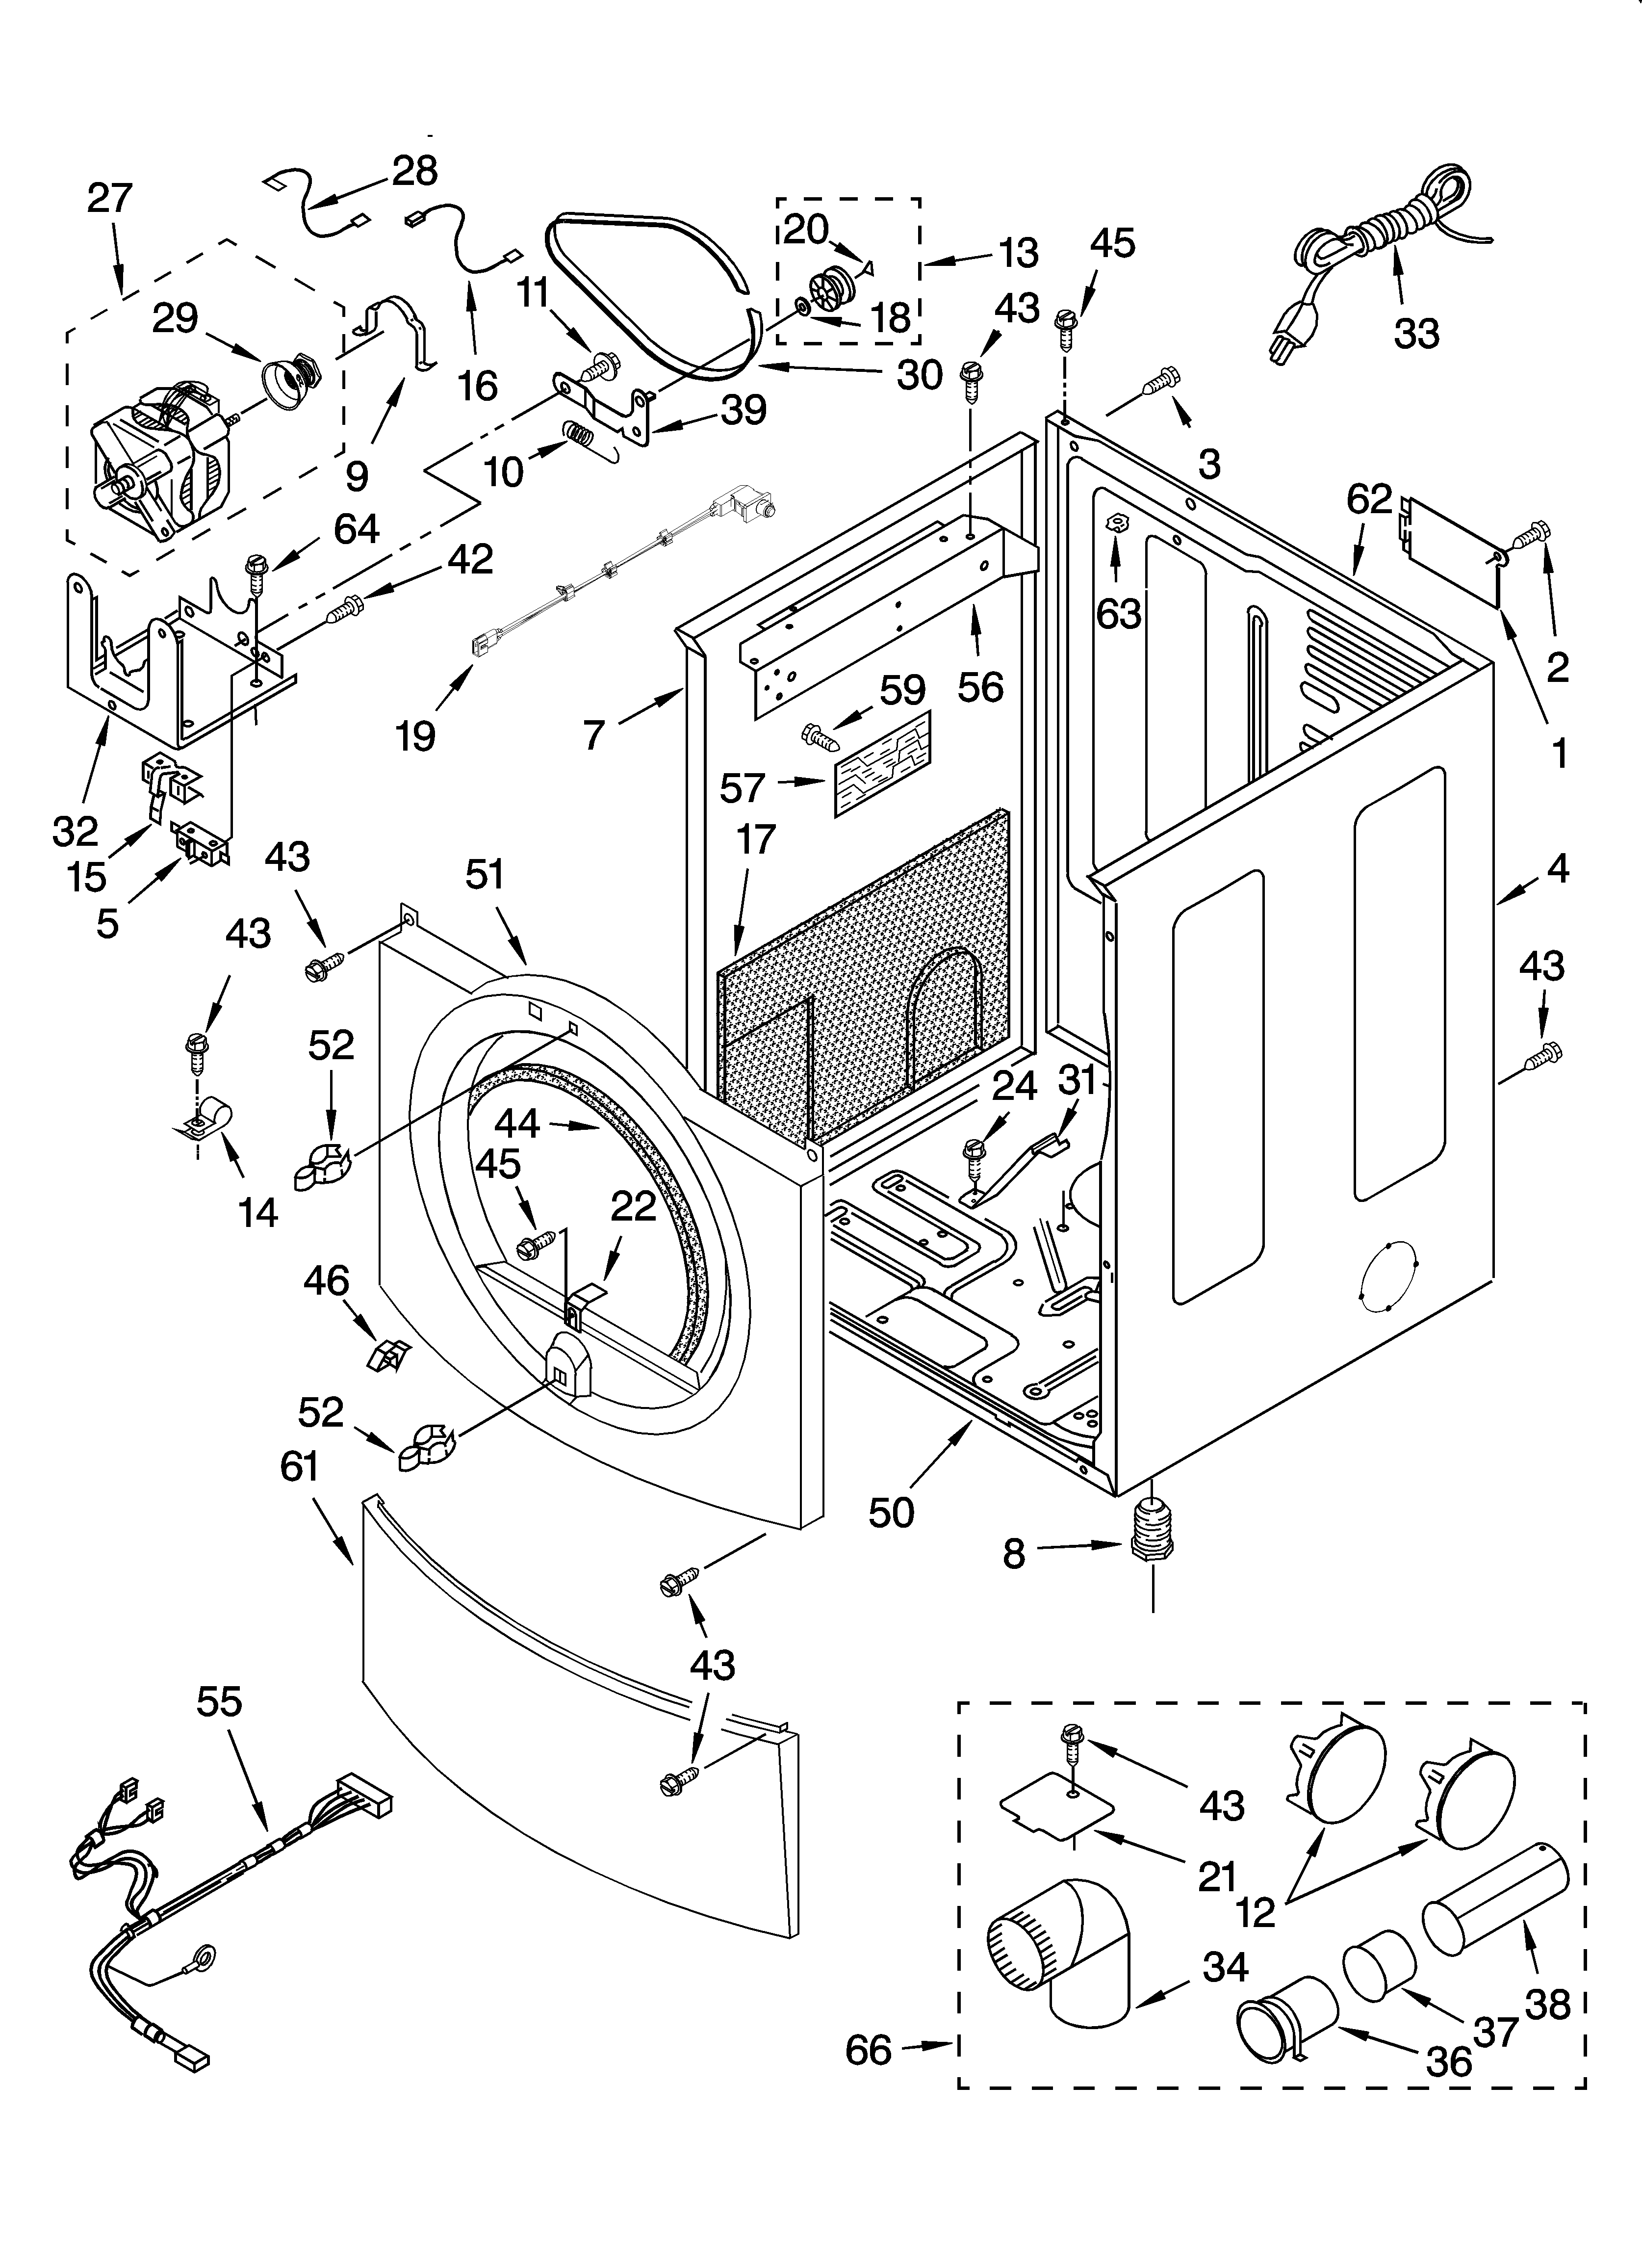 wiring diagram for whirlpool dryer wed6600vw0